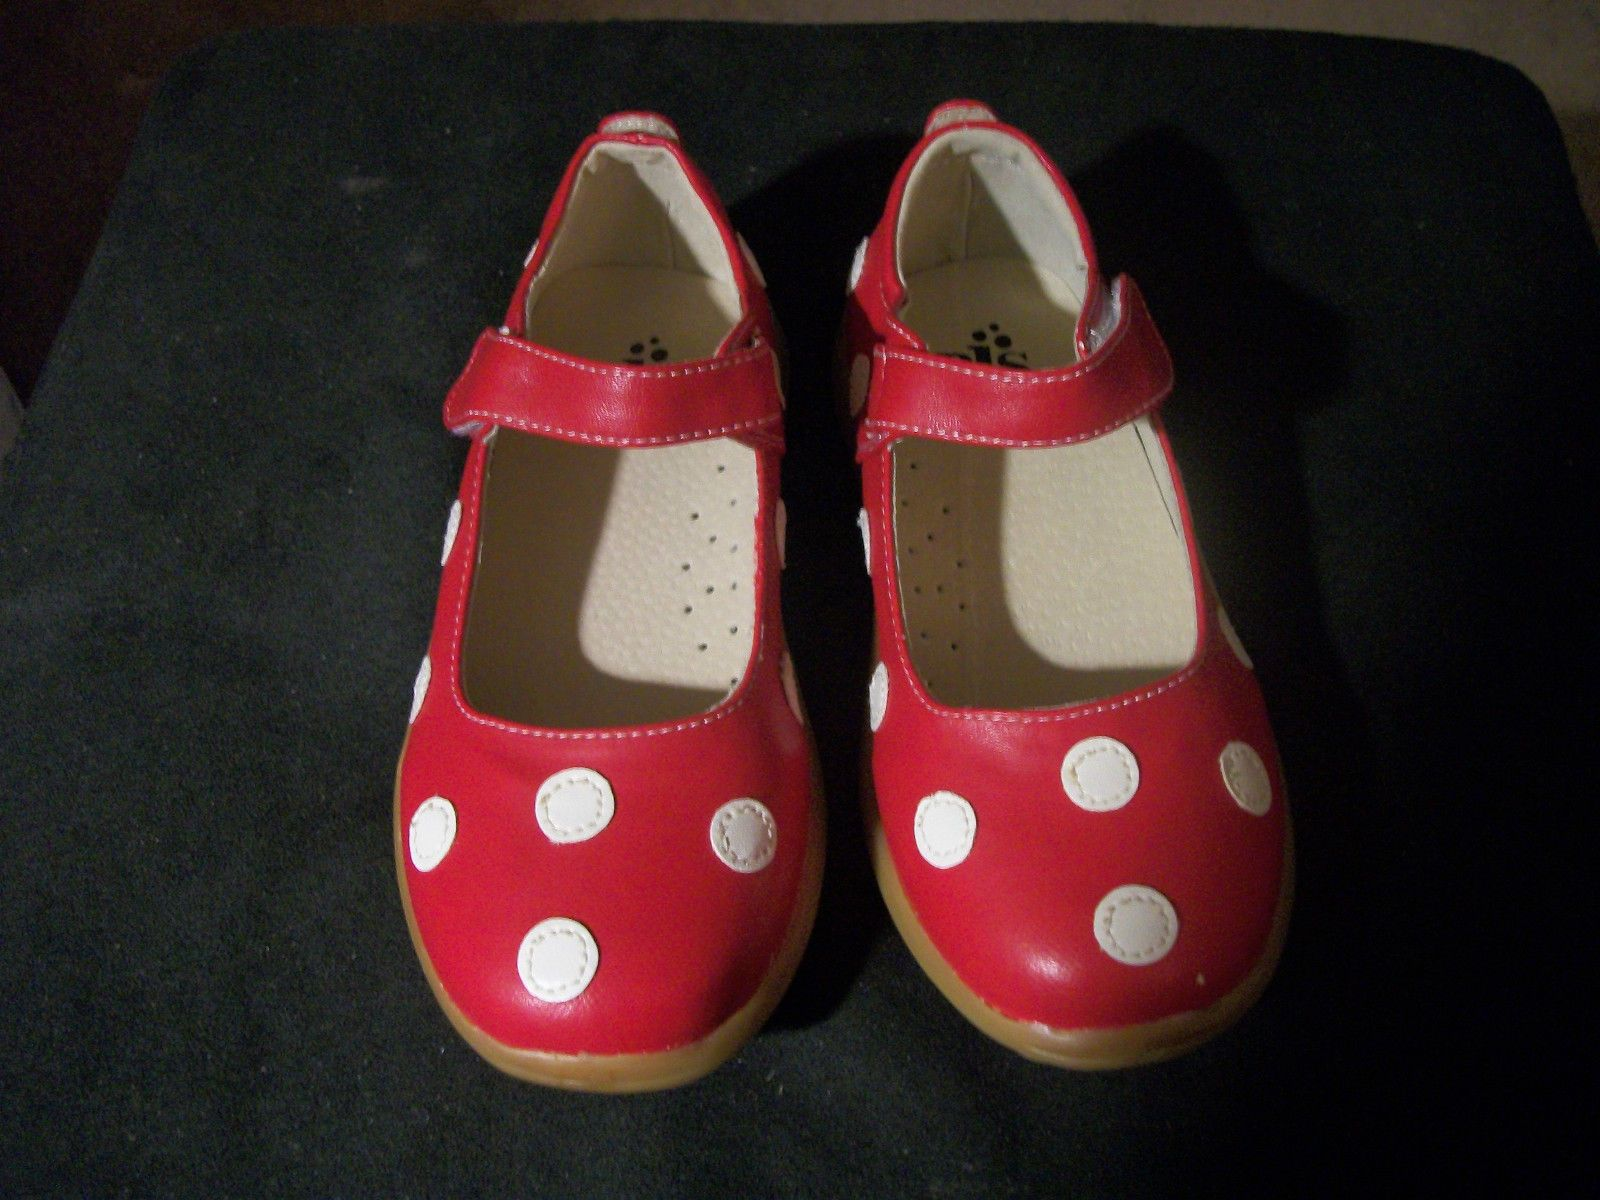 Puddle Jumper Shoes Red With White Polka Dots| Little Cousins Boutique Items@ www.thelittlecousins.com get ready for the Holidays early